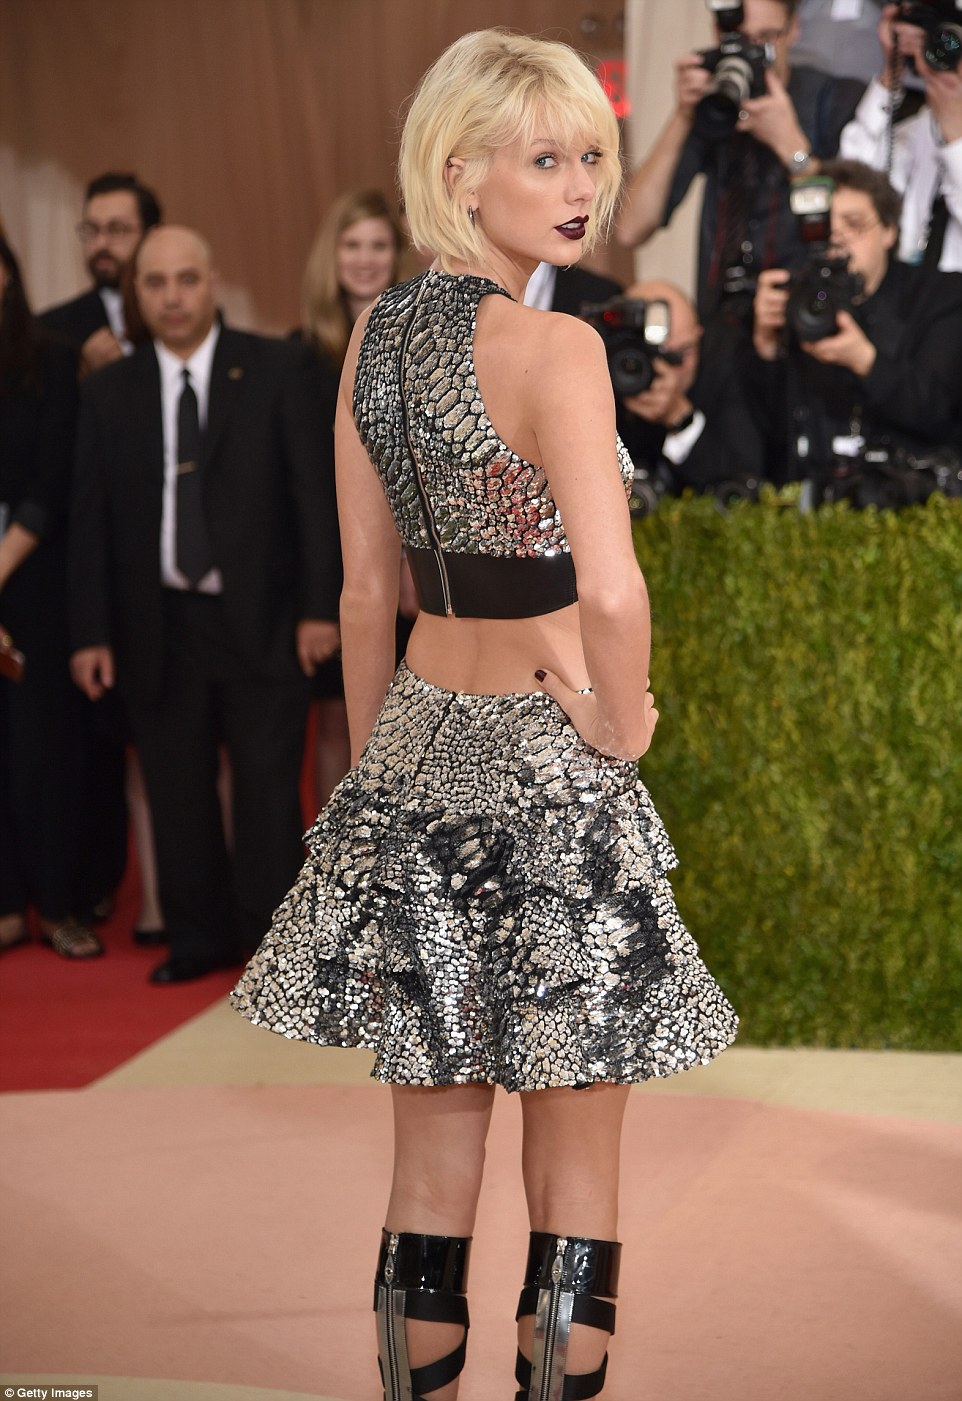 Taylor Swift is futuristic sexy for the Met Gala 2016